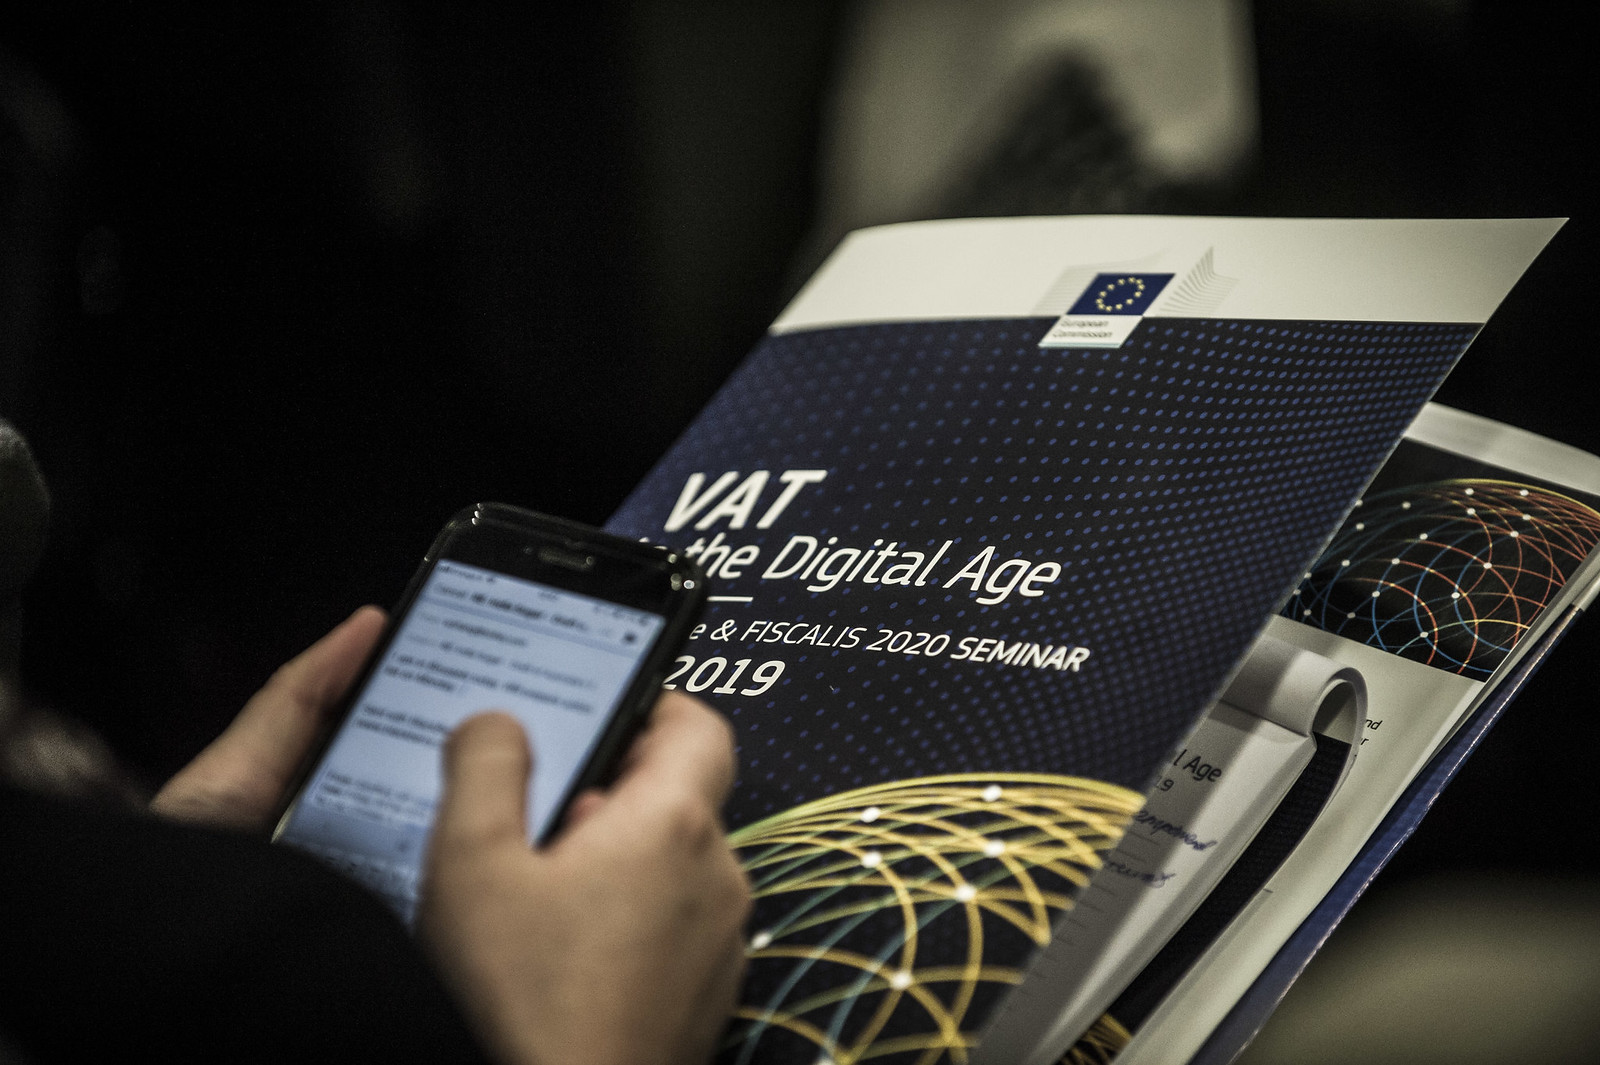 20191206 CONFERENCE VAT IN THE DIGITAL  AGE